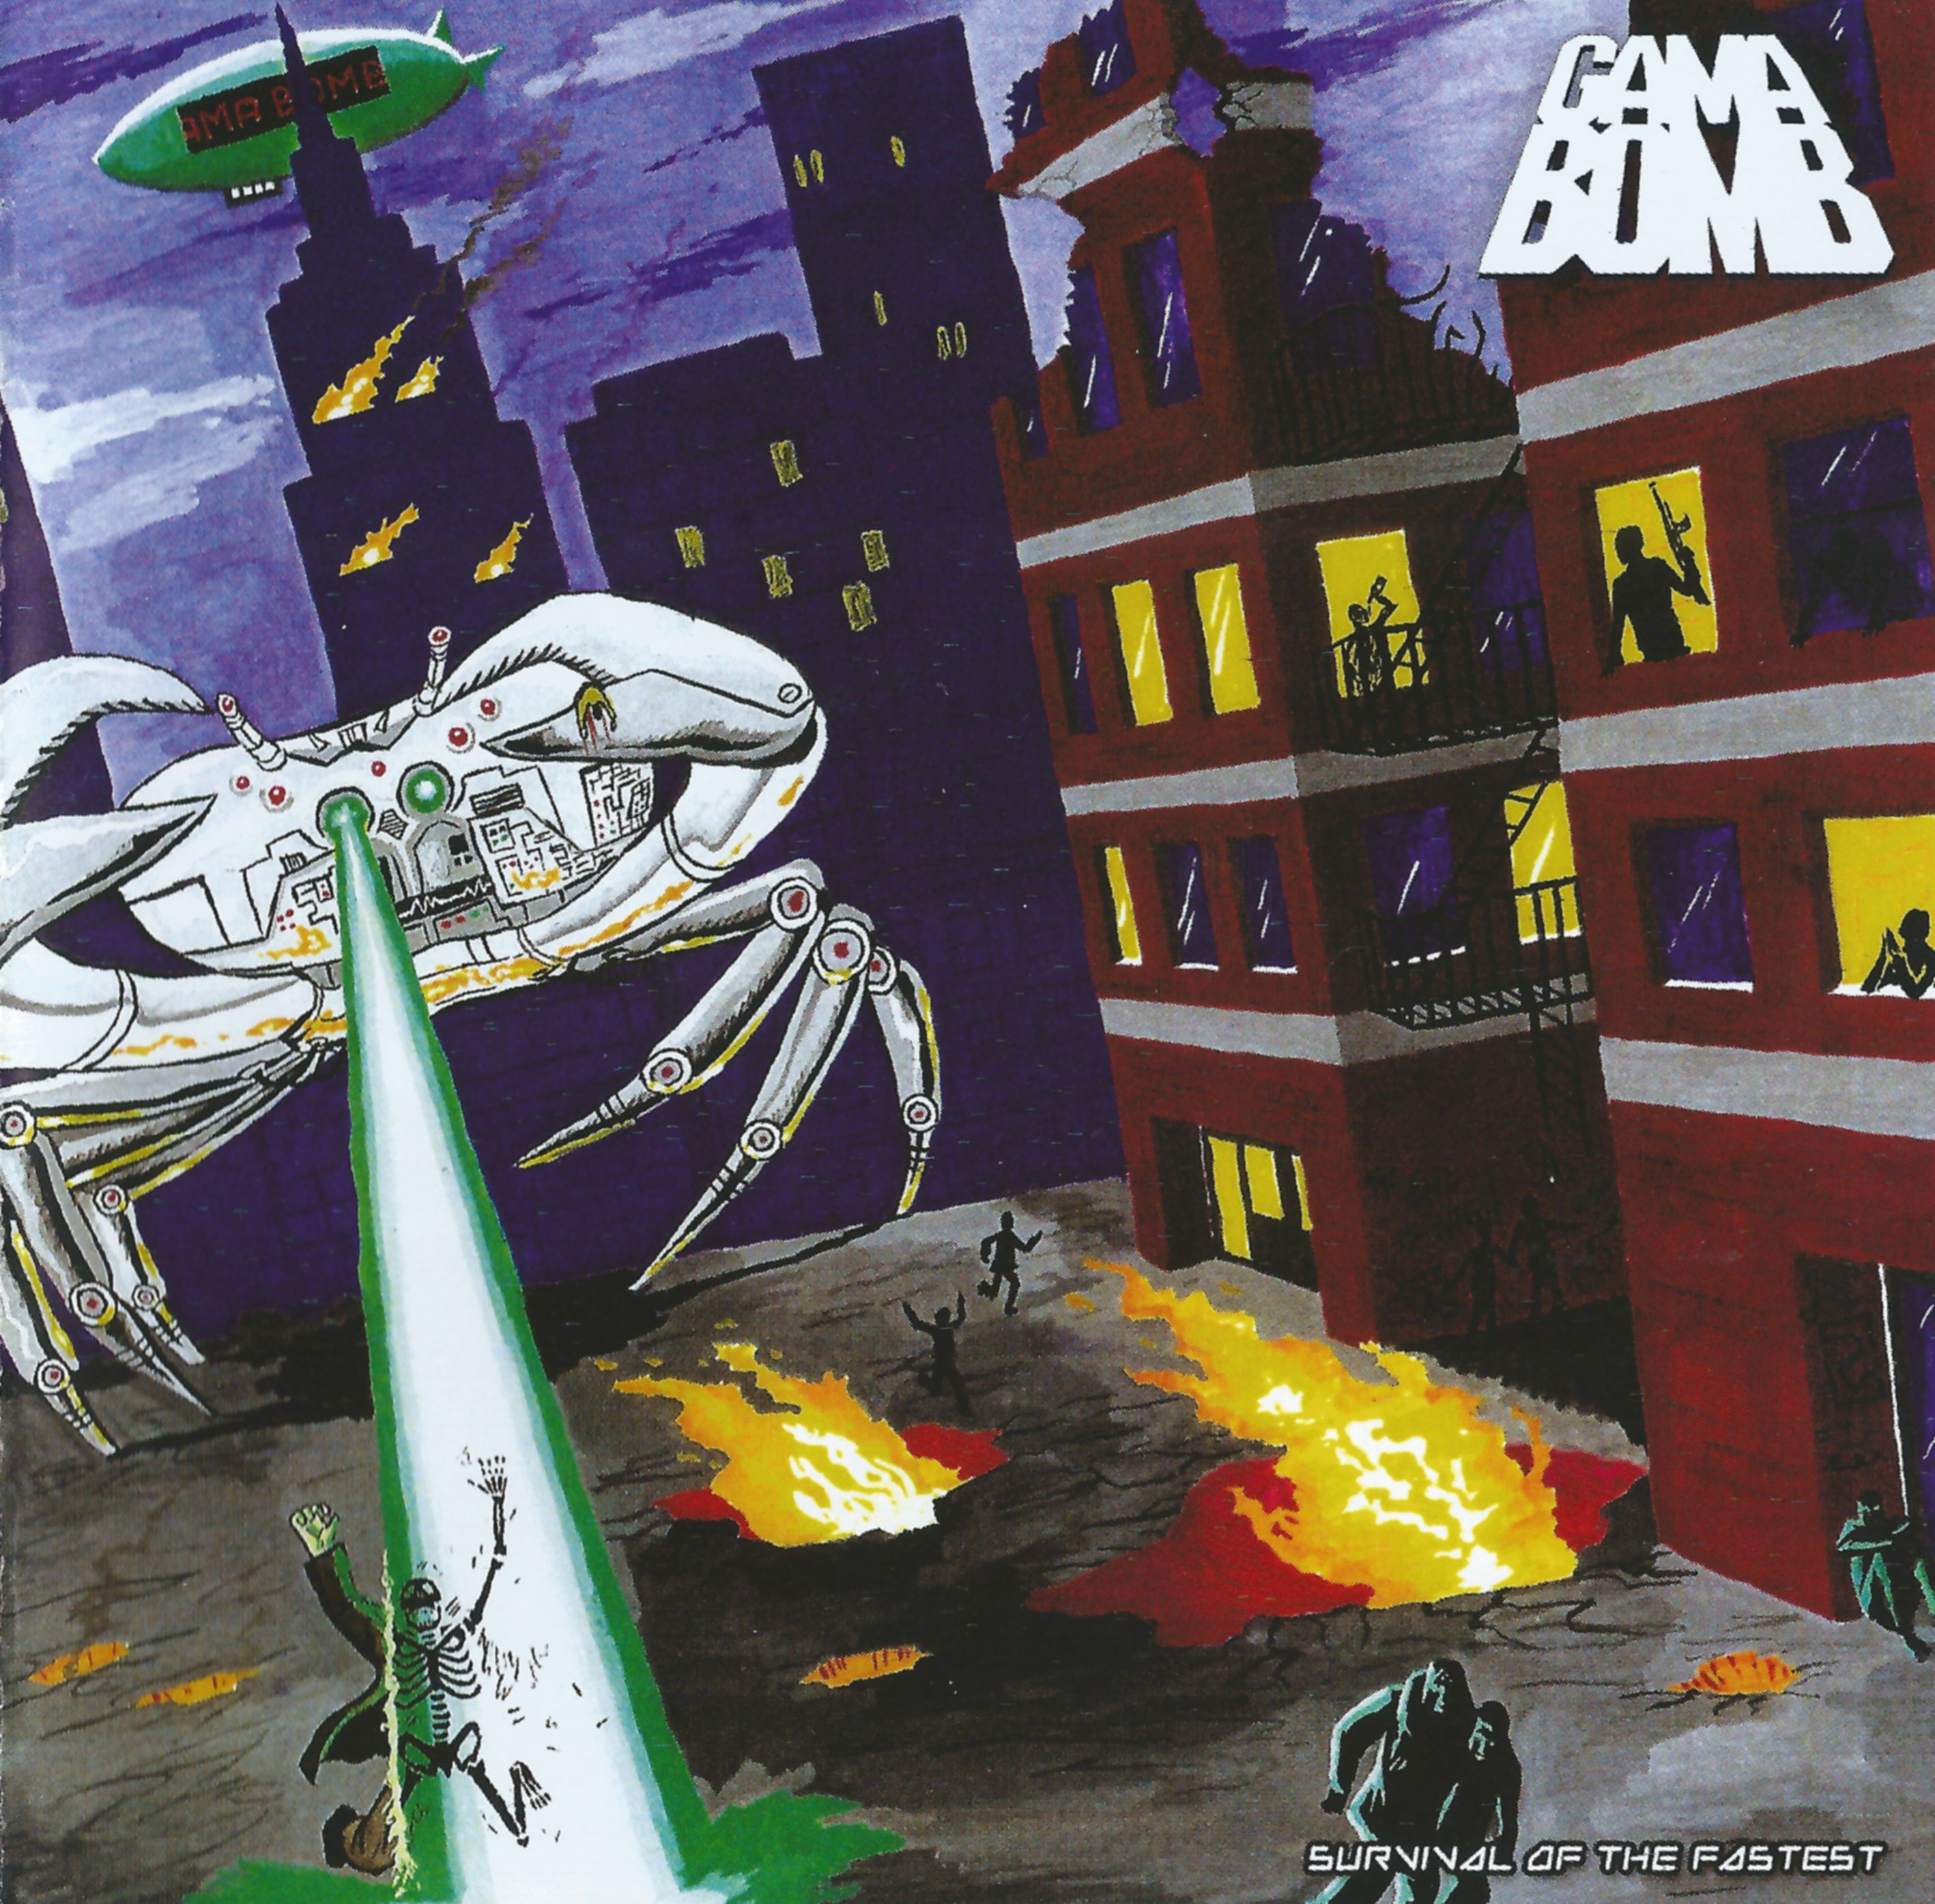 Gama Bomb - Survival Of The Fastest - 2005